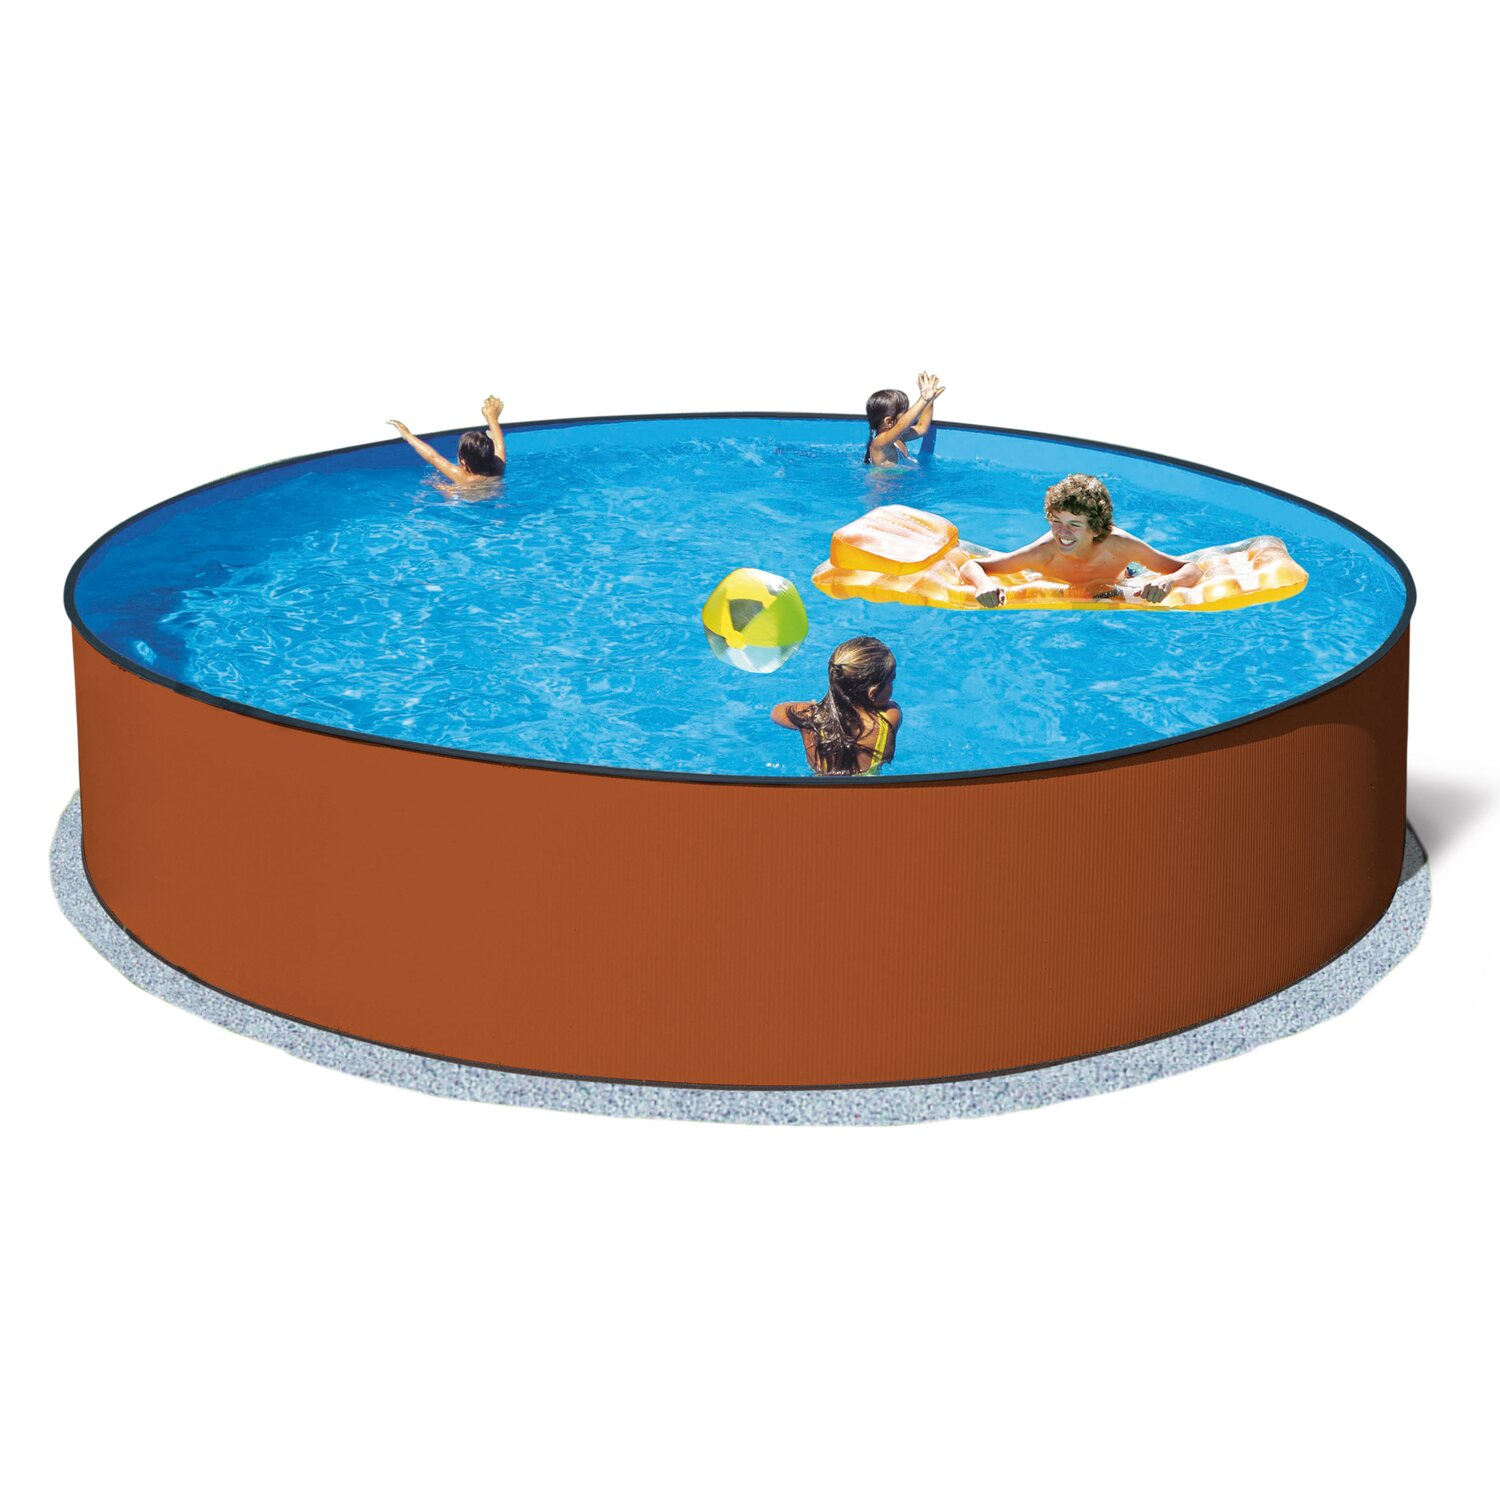 Einbaupool oval beautiful einbaupool oval with einbaupool for Bestway pool obi